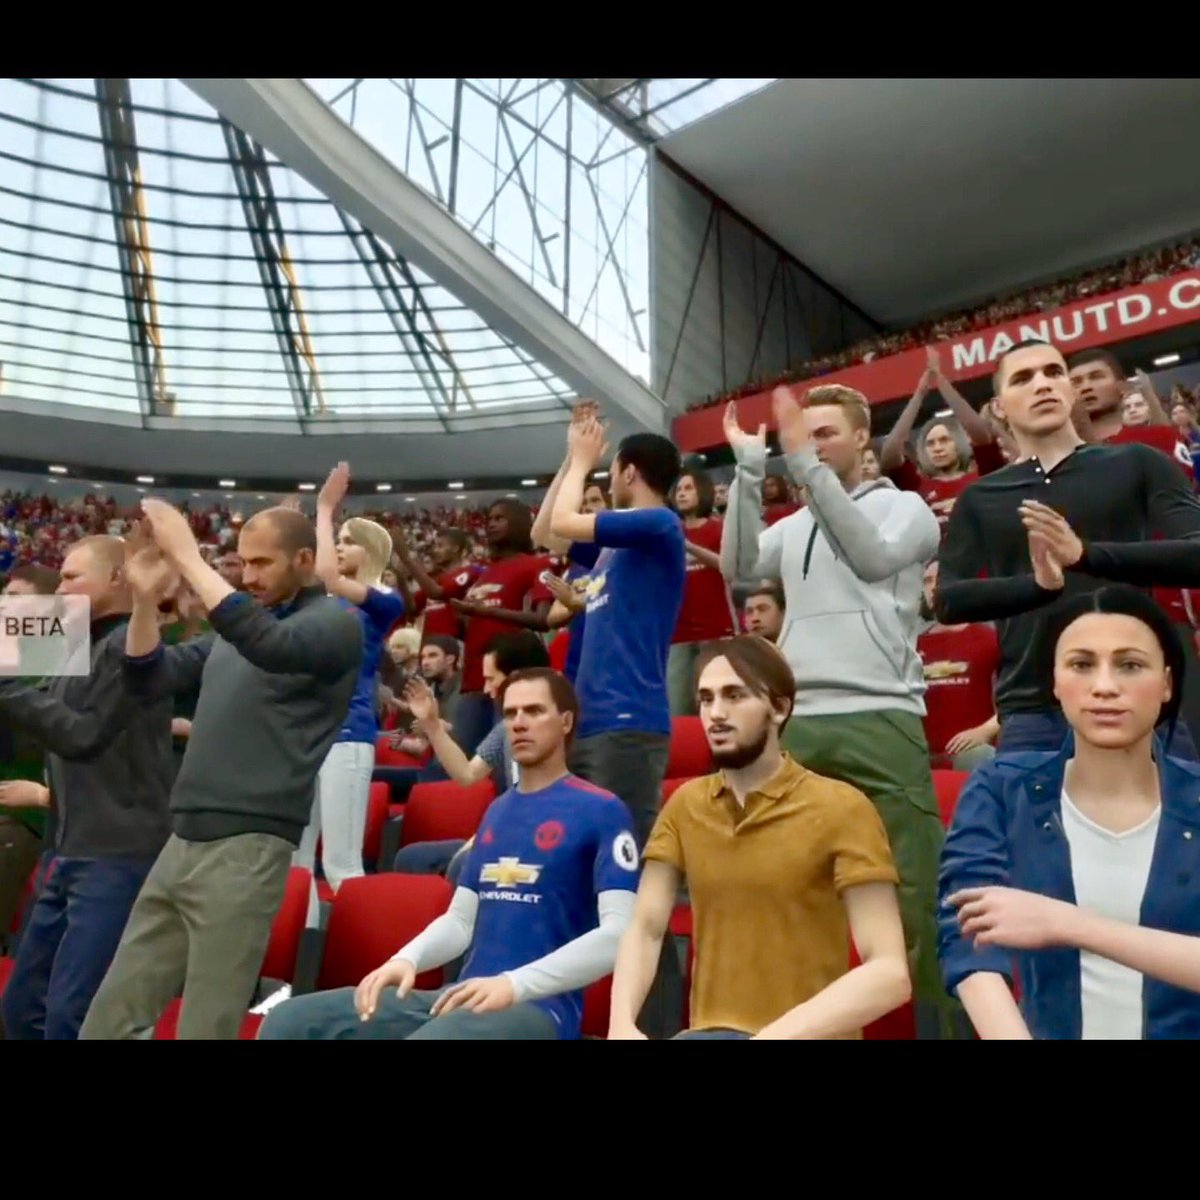 That moment when aleix garcia is in the crowd with manchester united supporters in the fifa 18 beta #fifa18 #fifa #ea<br>http://pic.twitter.com/IcXz9EorwH